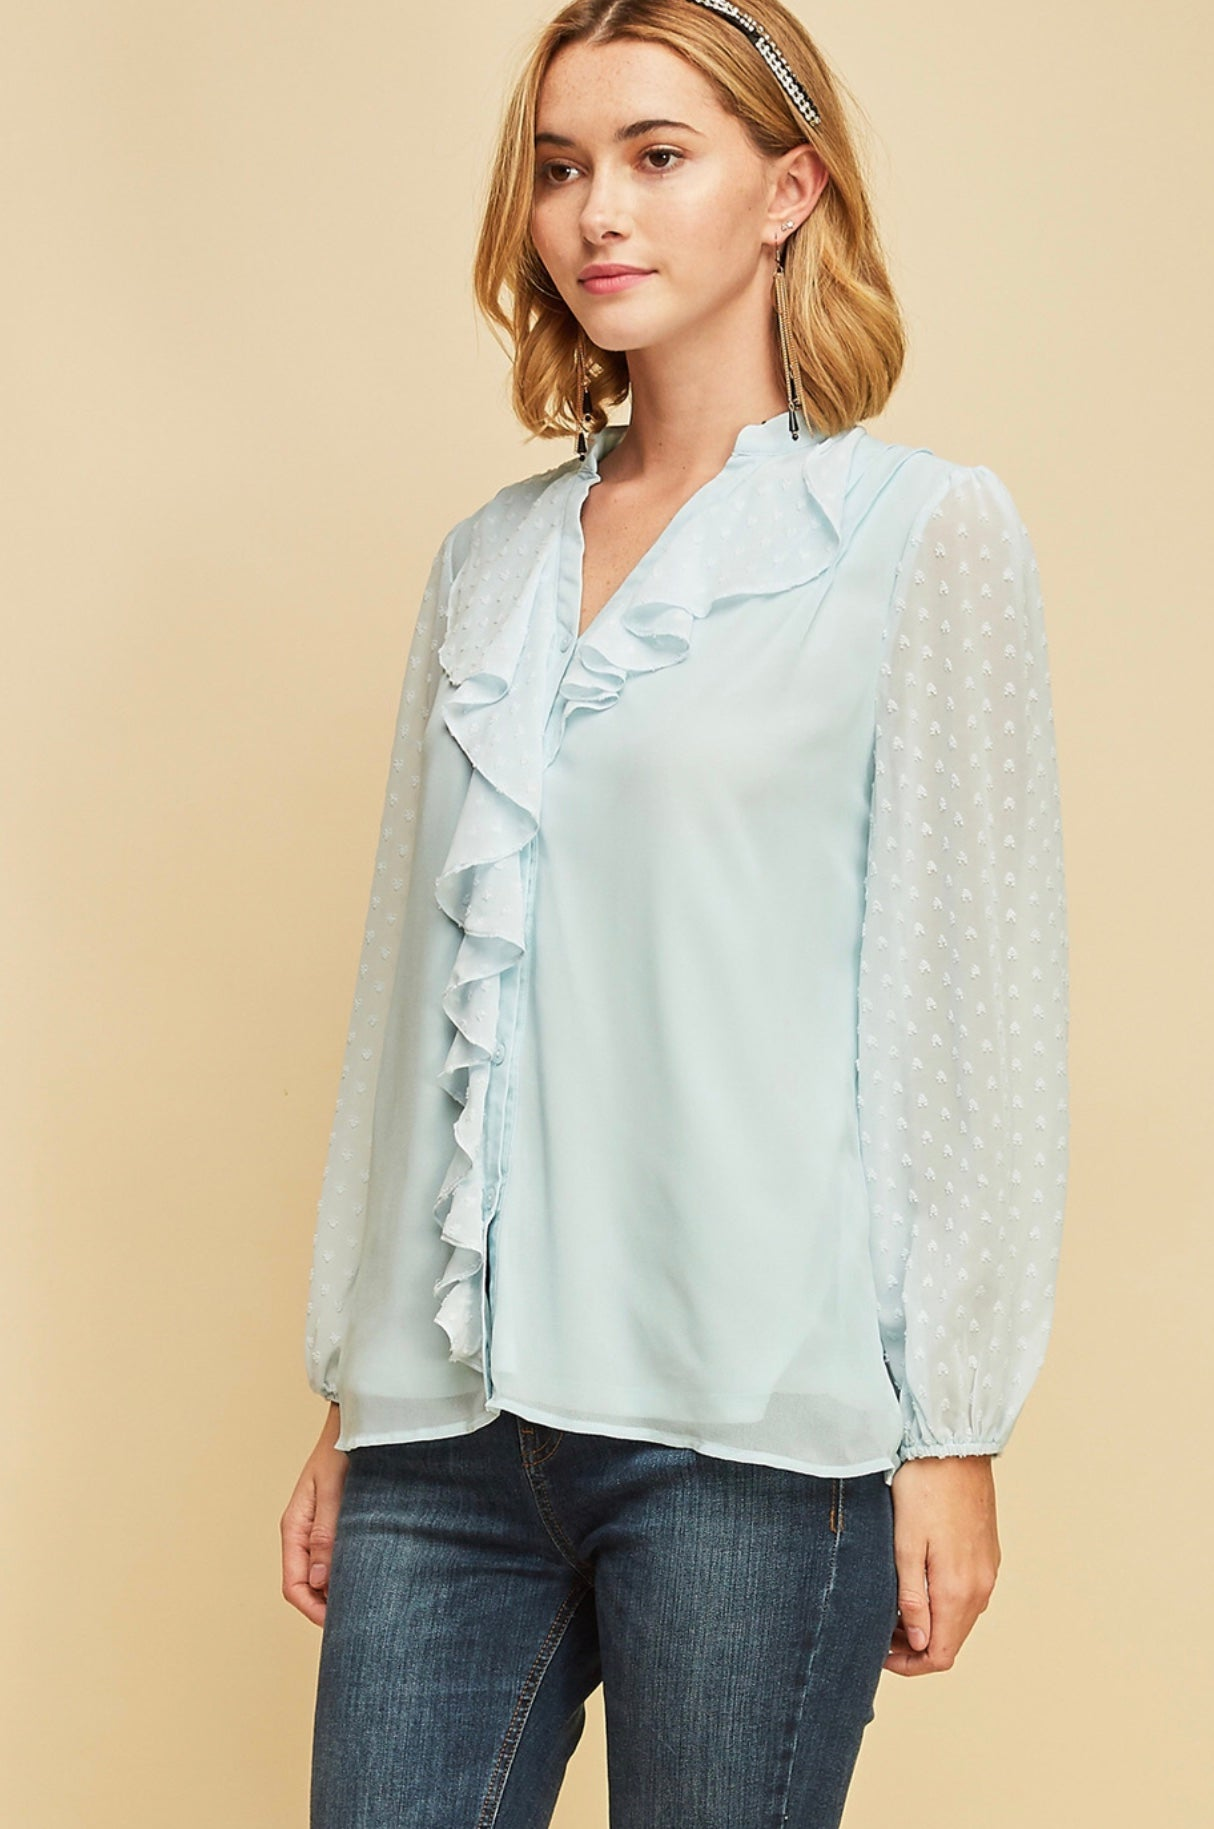 Light Blue Swiss Polka Dot Ruffle Blouse